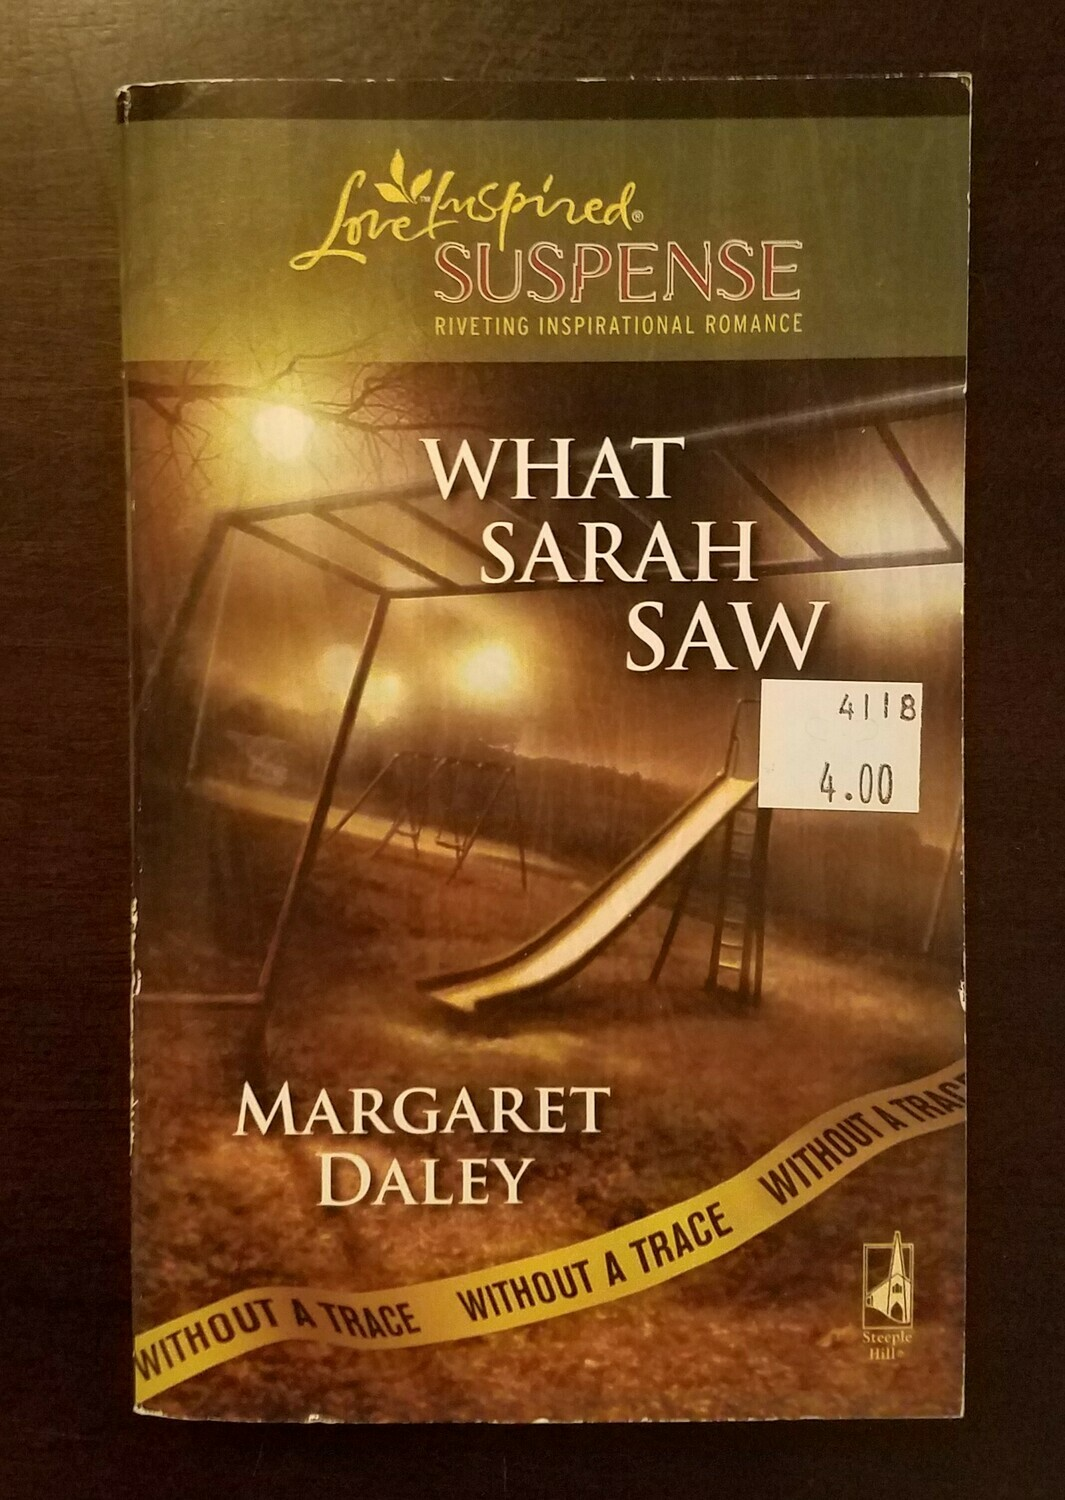 What Sarah Saw by Margaret Daley